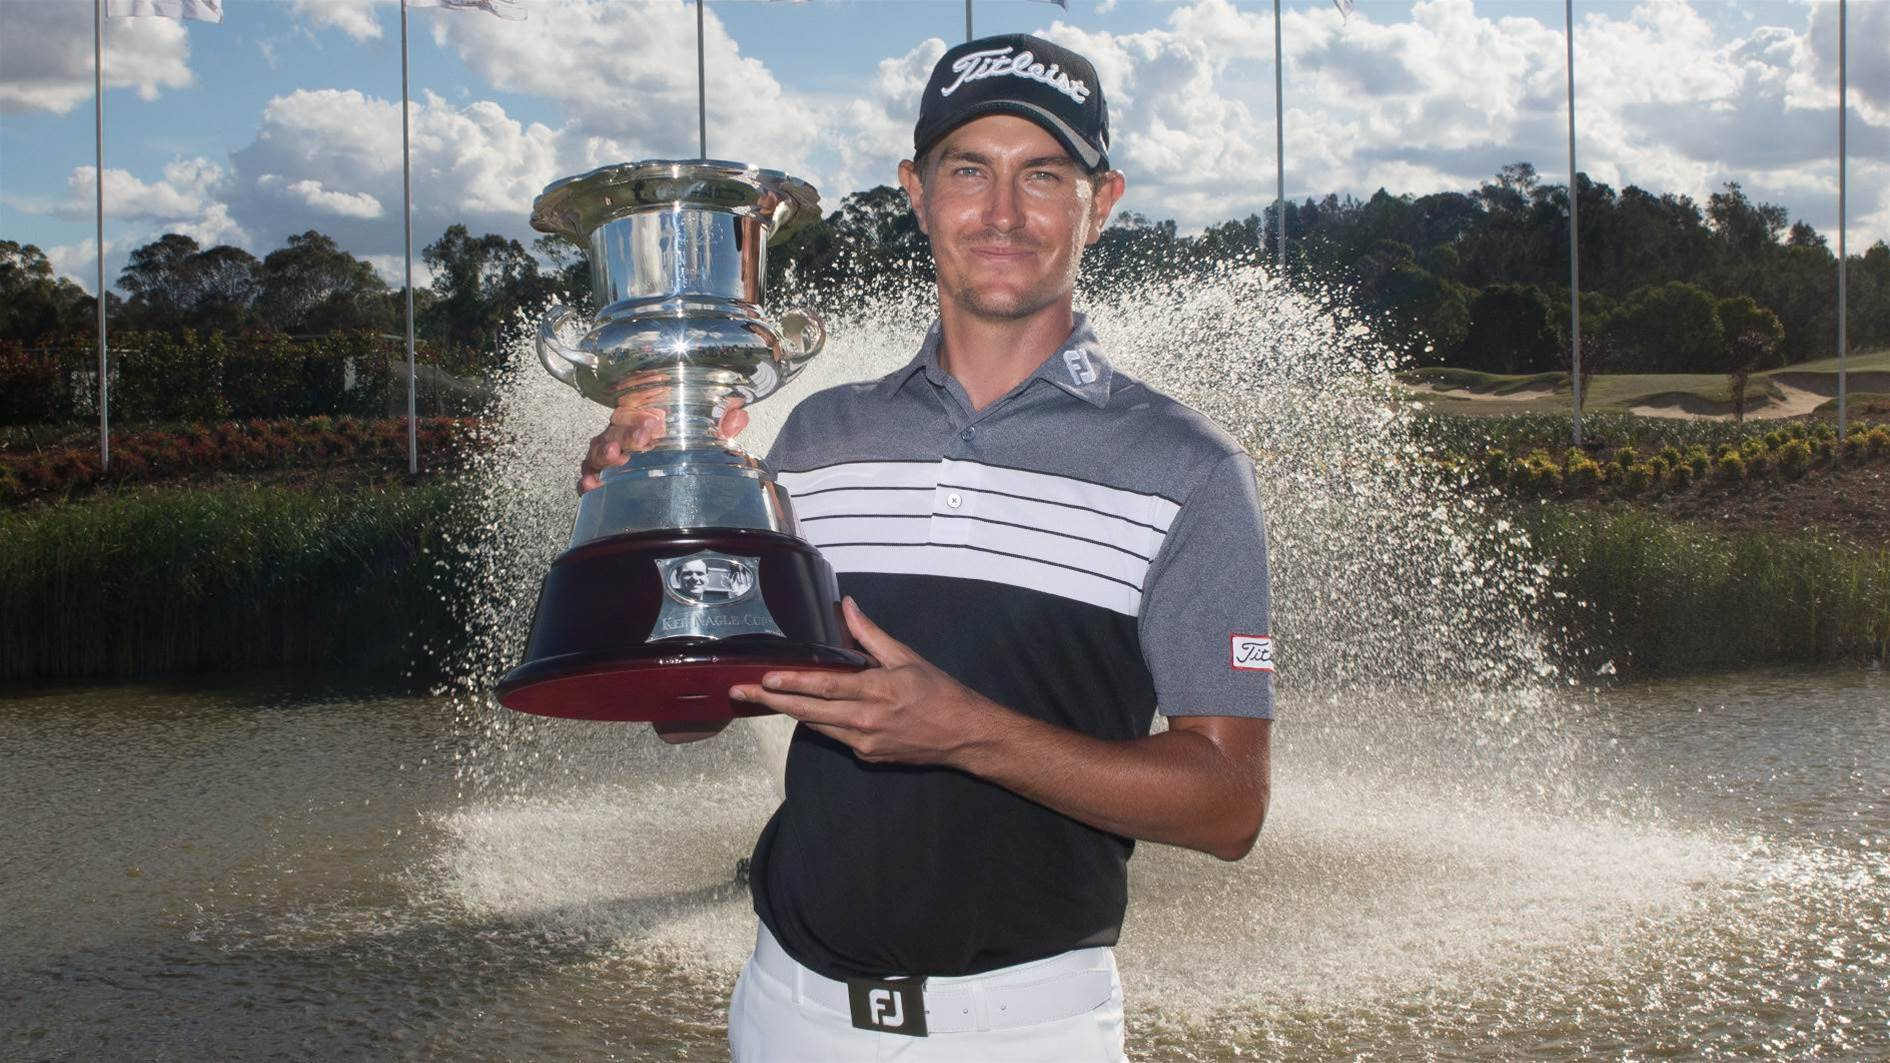 NSW OPEN: Scrivener finally takes his chance